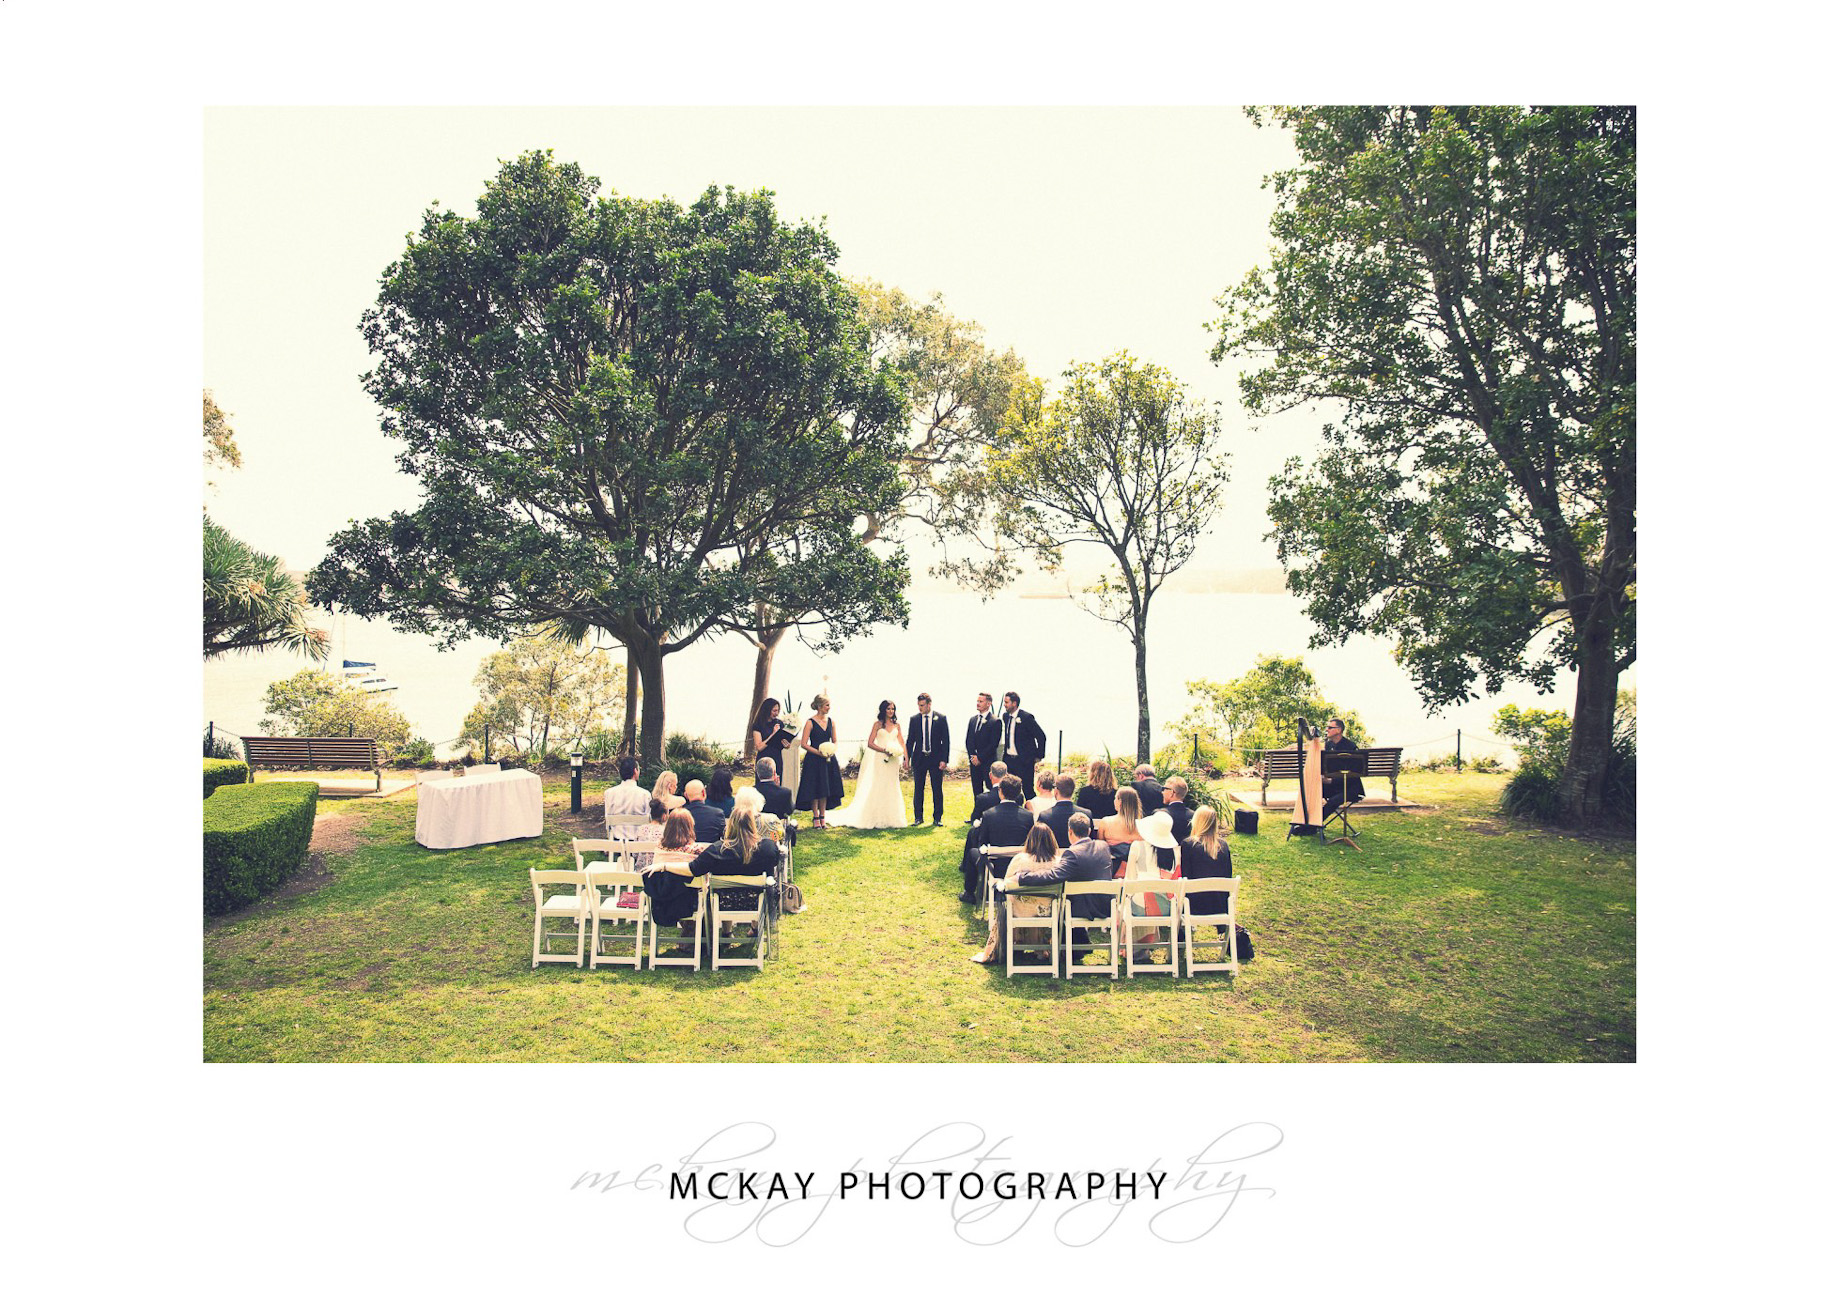 Wedding ceremony set up at McKell Park Darling Point